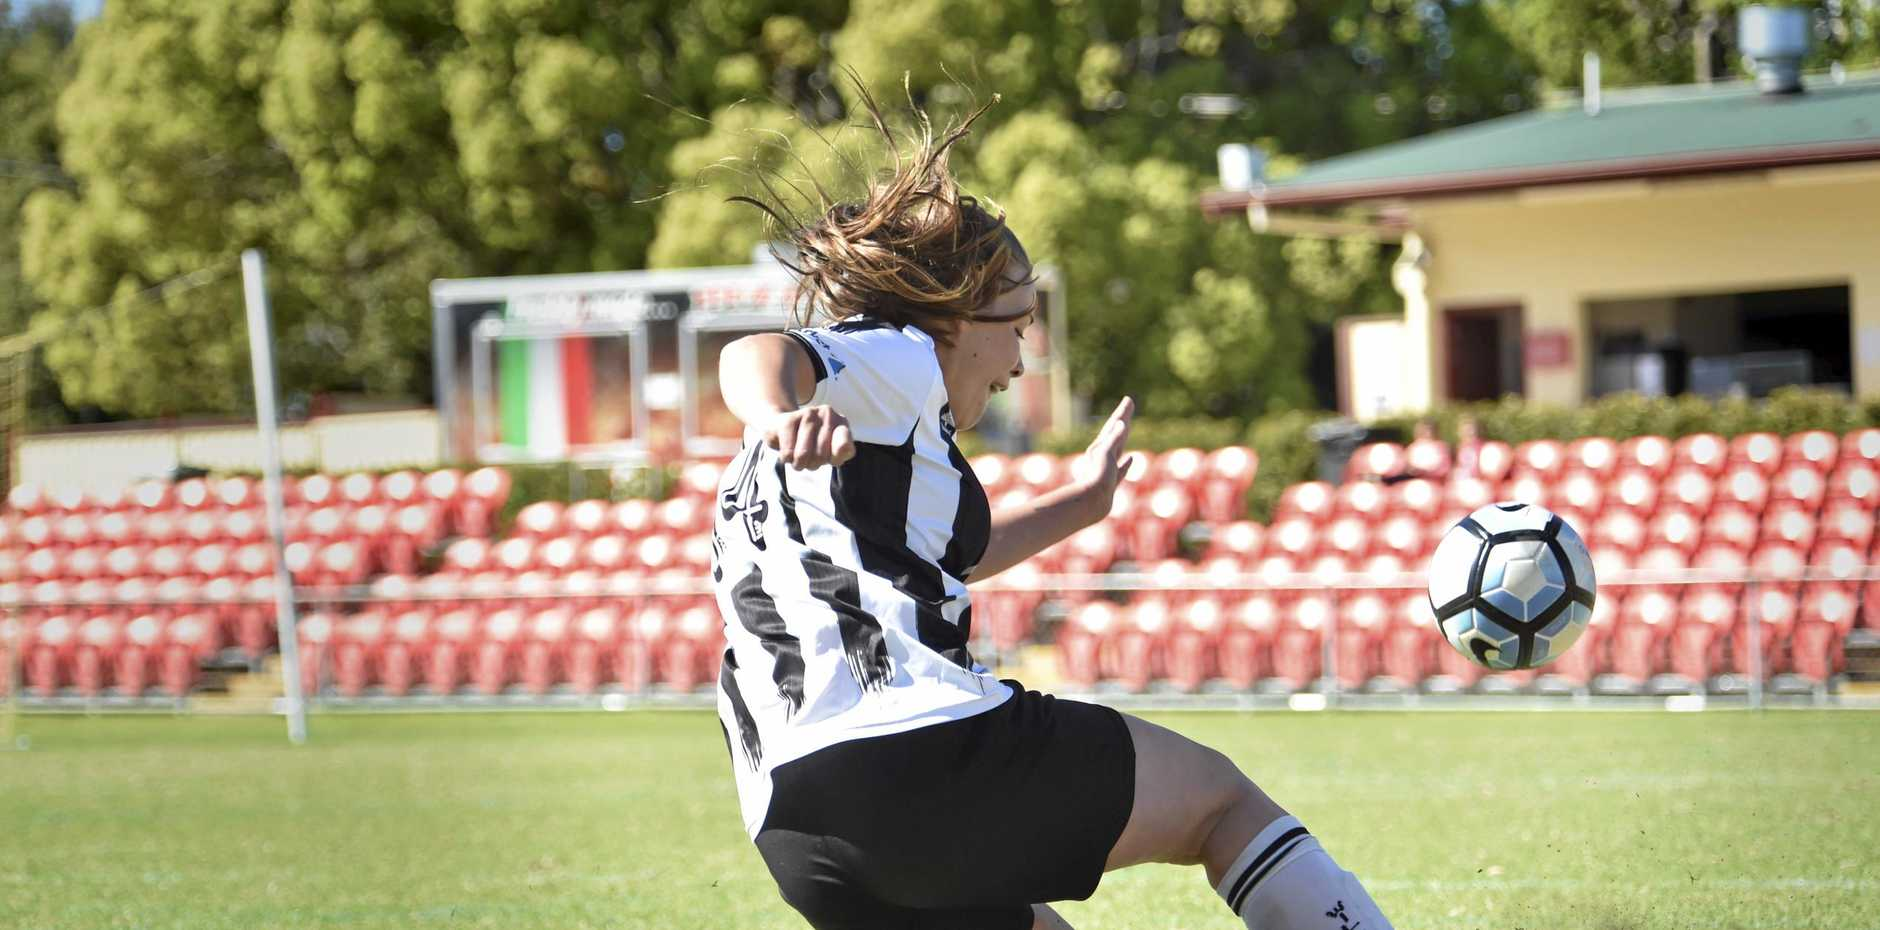 GOOD DEFENCE: Nicole Mairs clears the ball for Willowburn during a match last year.